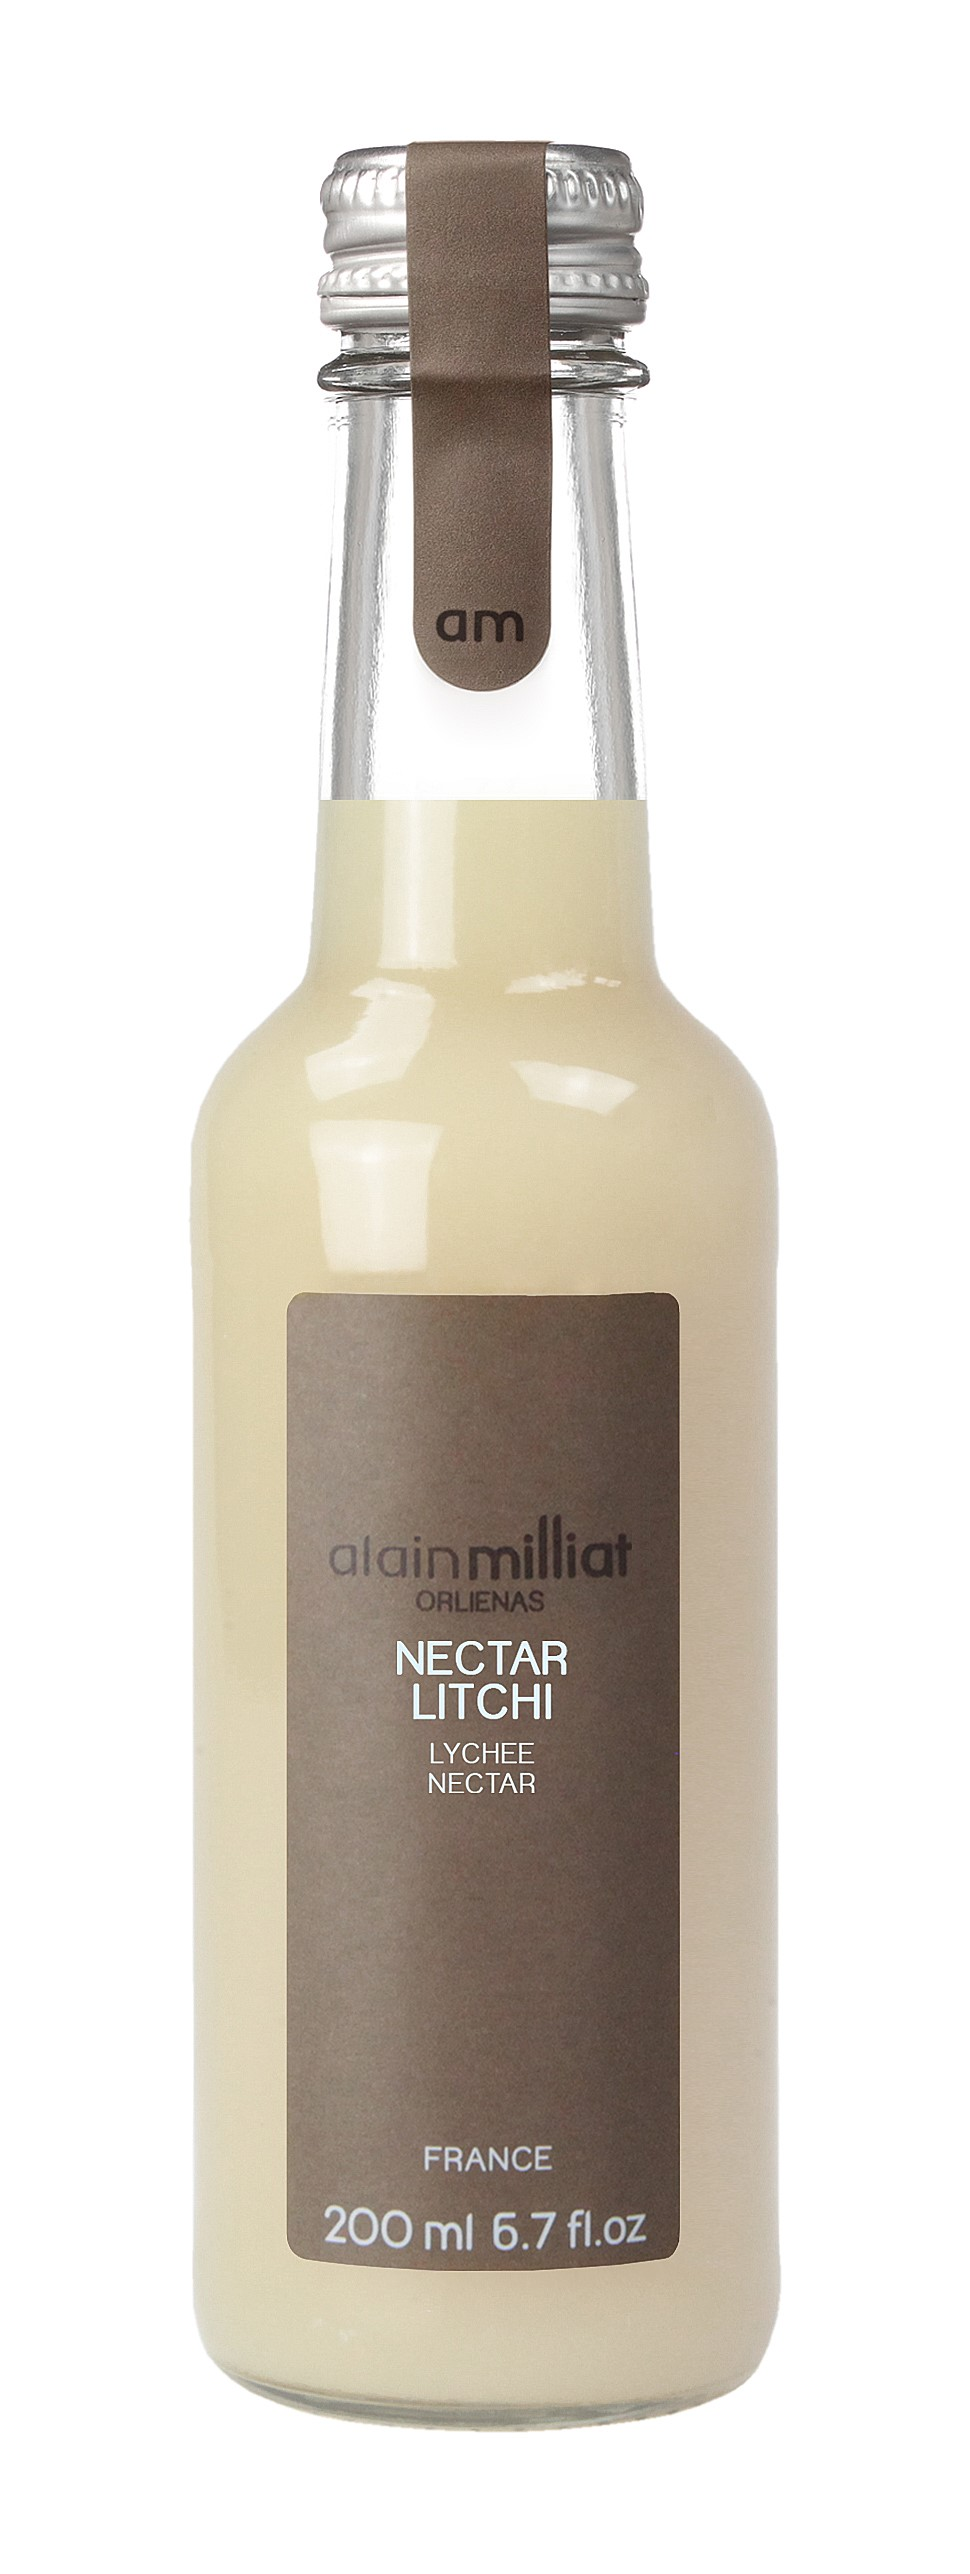 Nectar Litchi, Alain Milliat (20 cl)